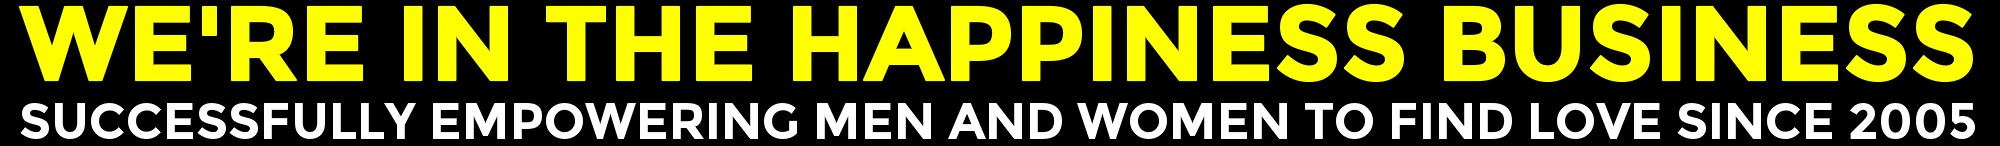 We're In The Happiness Business ... Successfully Empowering Men And Women To Find Love Since 2005